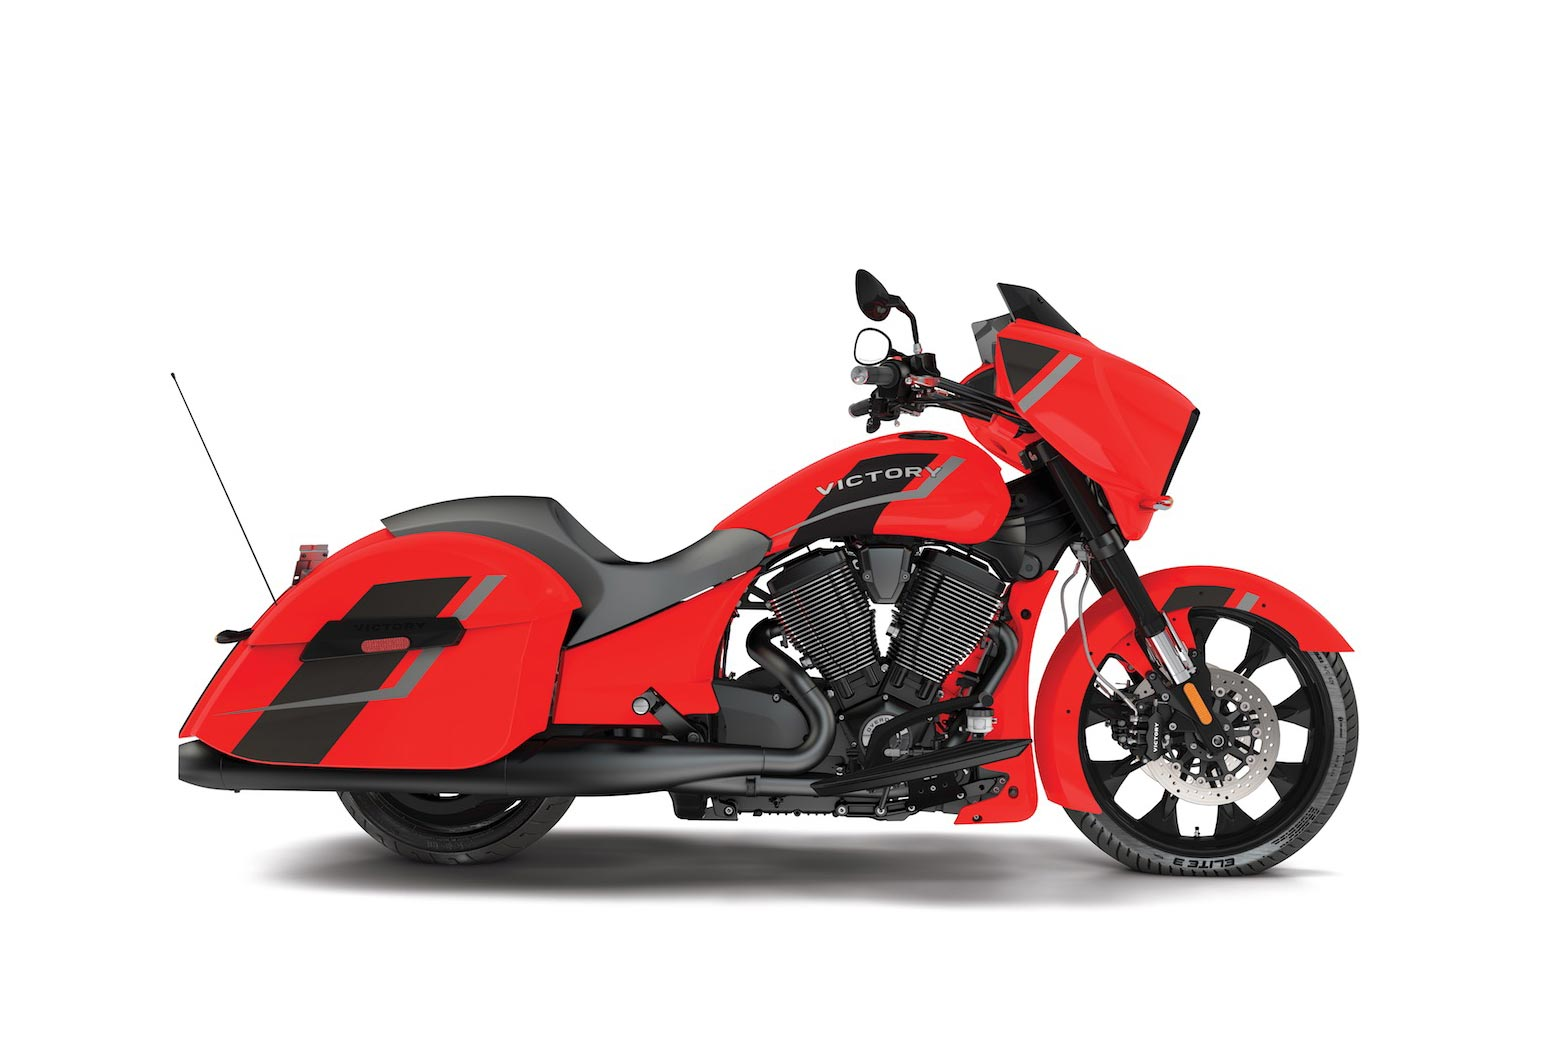 26 000 Victory Motorcycles Being Recalled Asphalt Amp Rubber